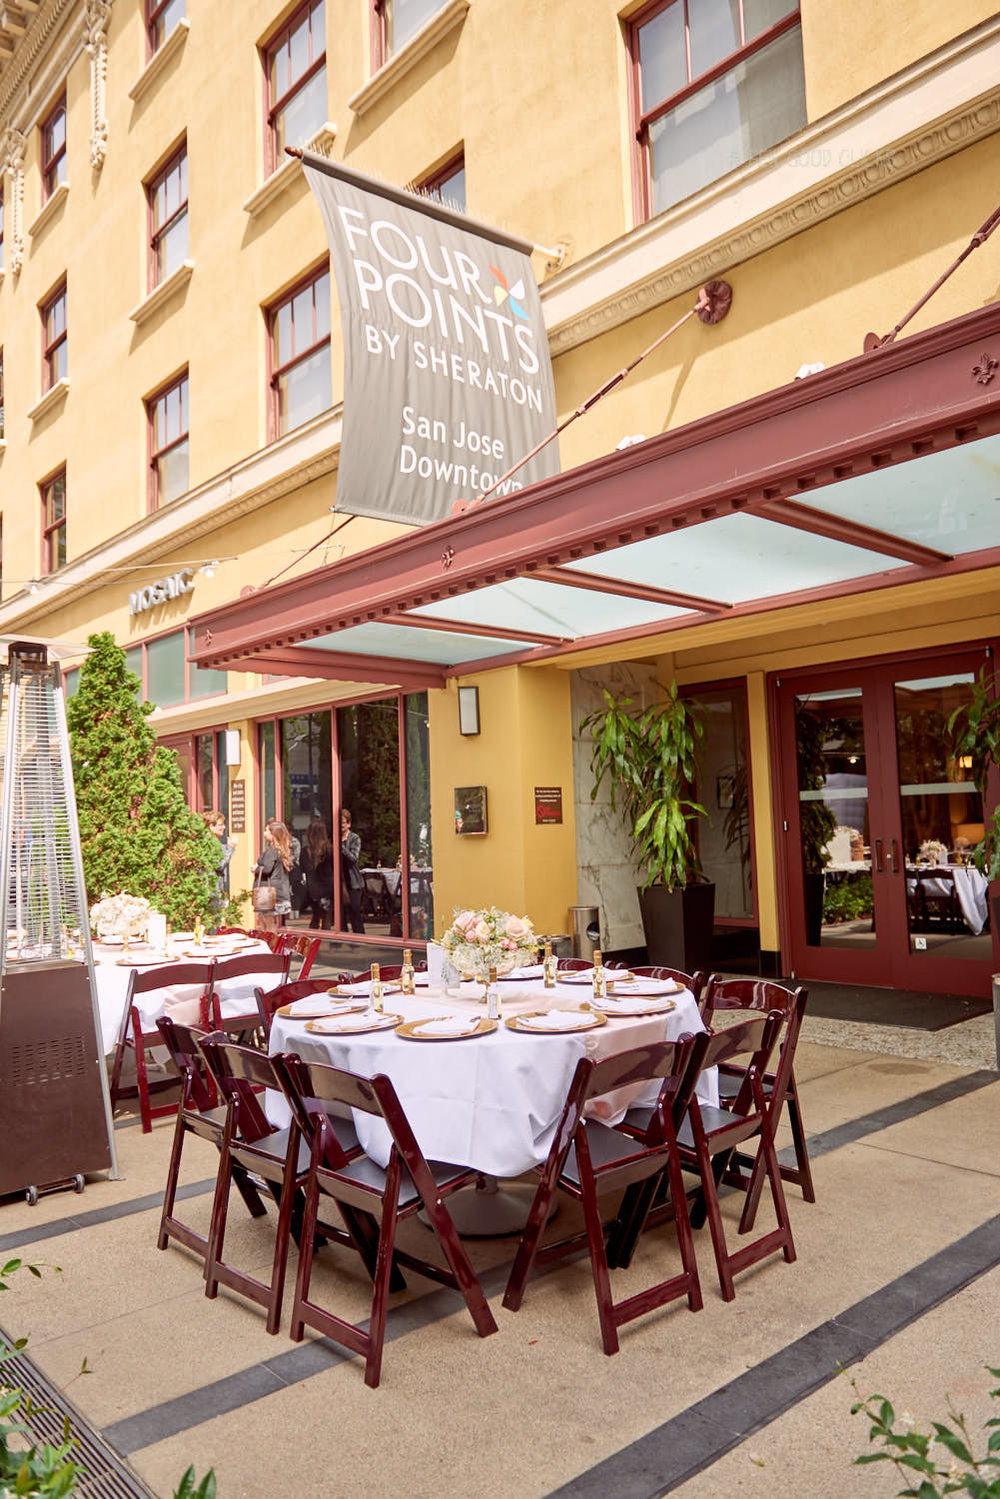 Looking for a birthday party venue? Mosaic Restaurant & Bar offers an amazing patio surrounded with olive trees in the heart of downtown San Jose at Four Points Sheraton.